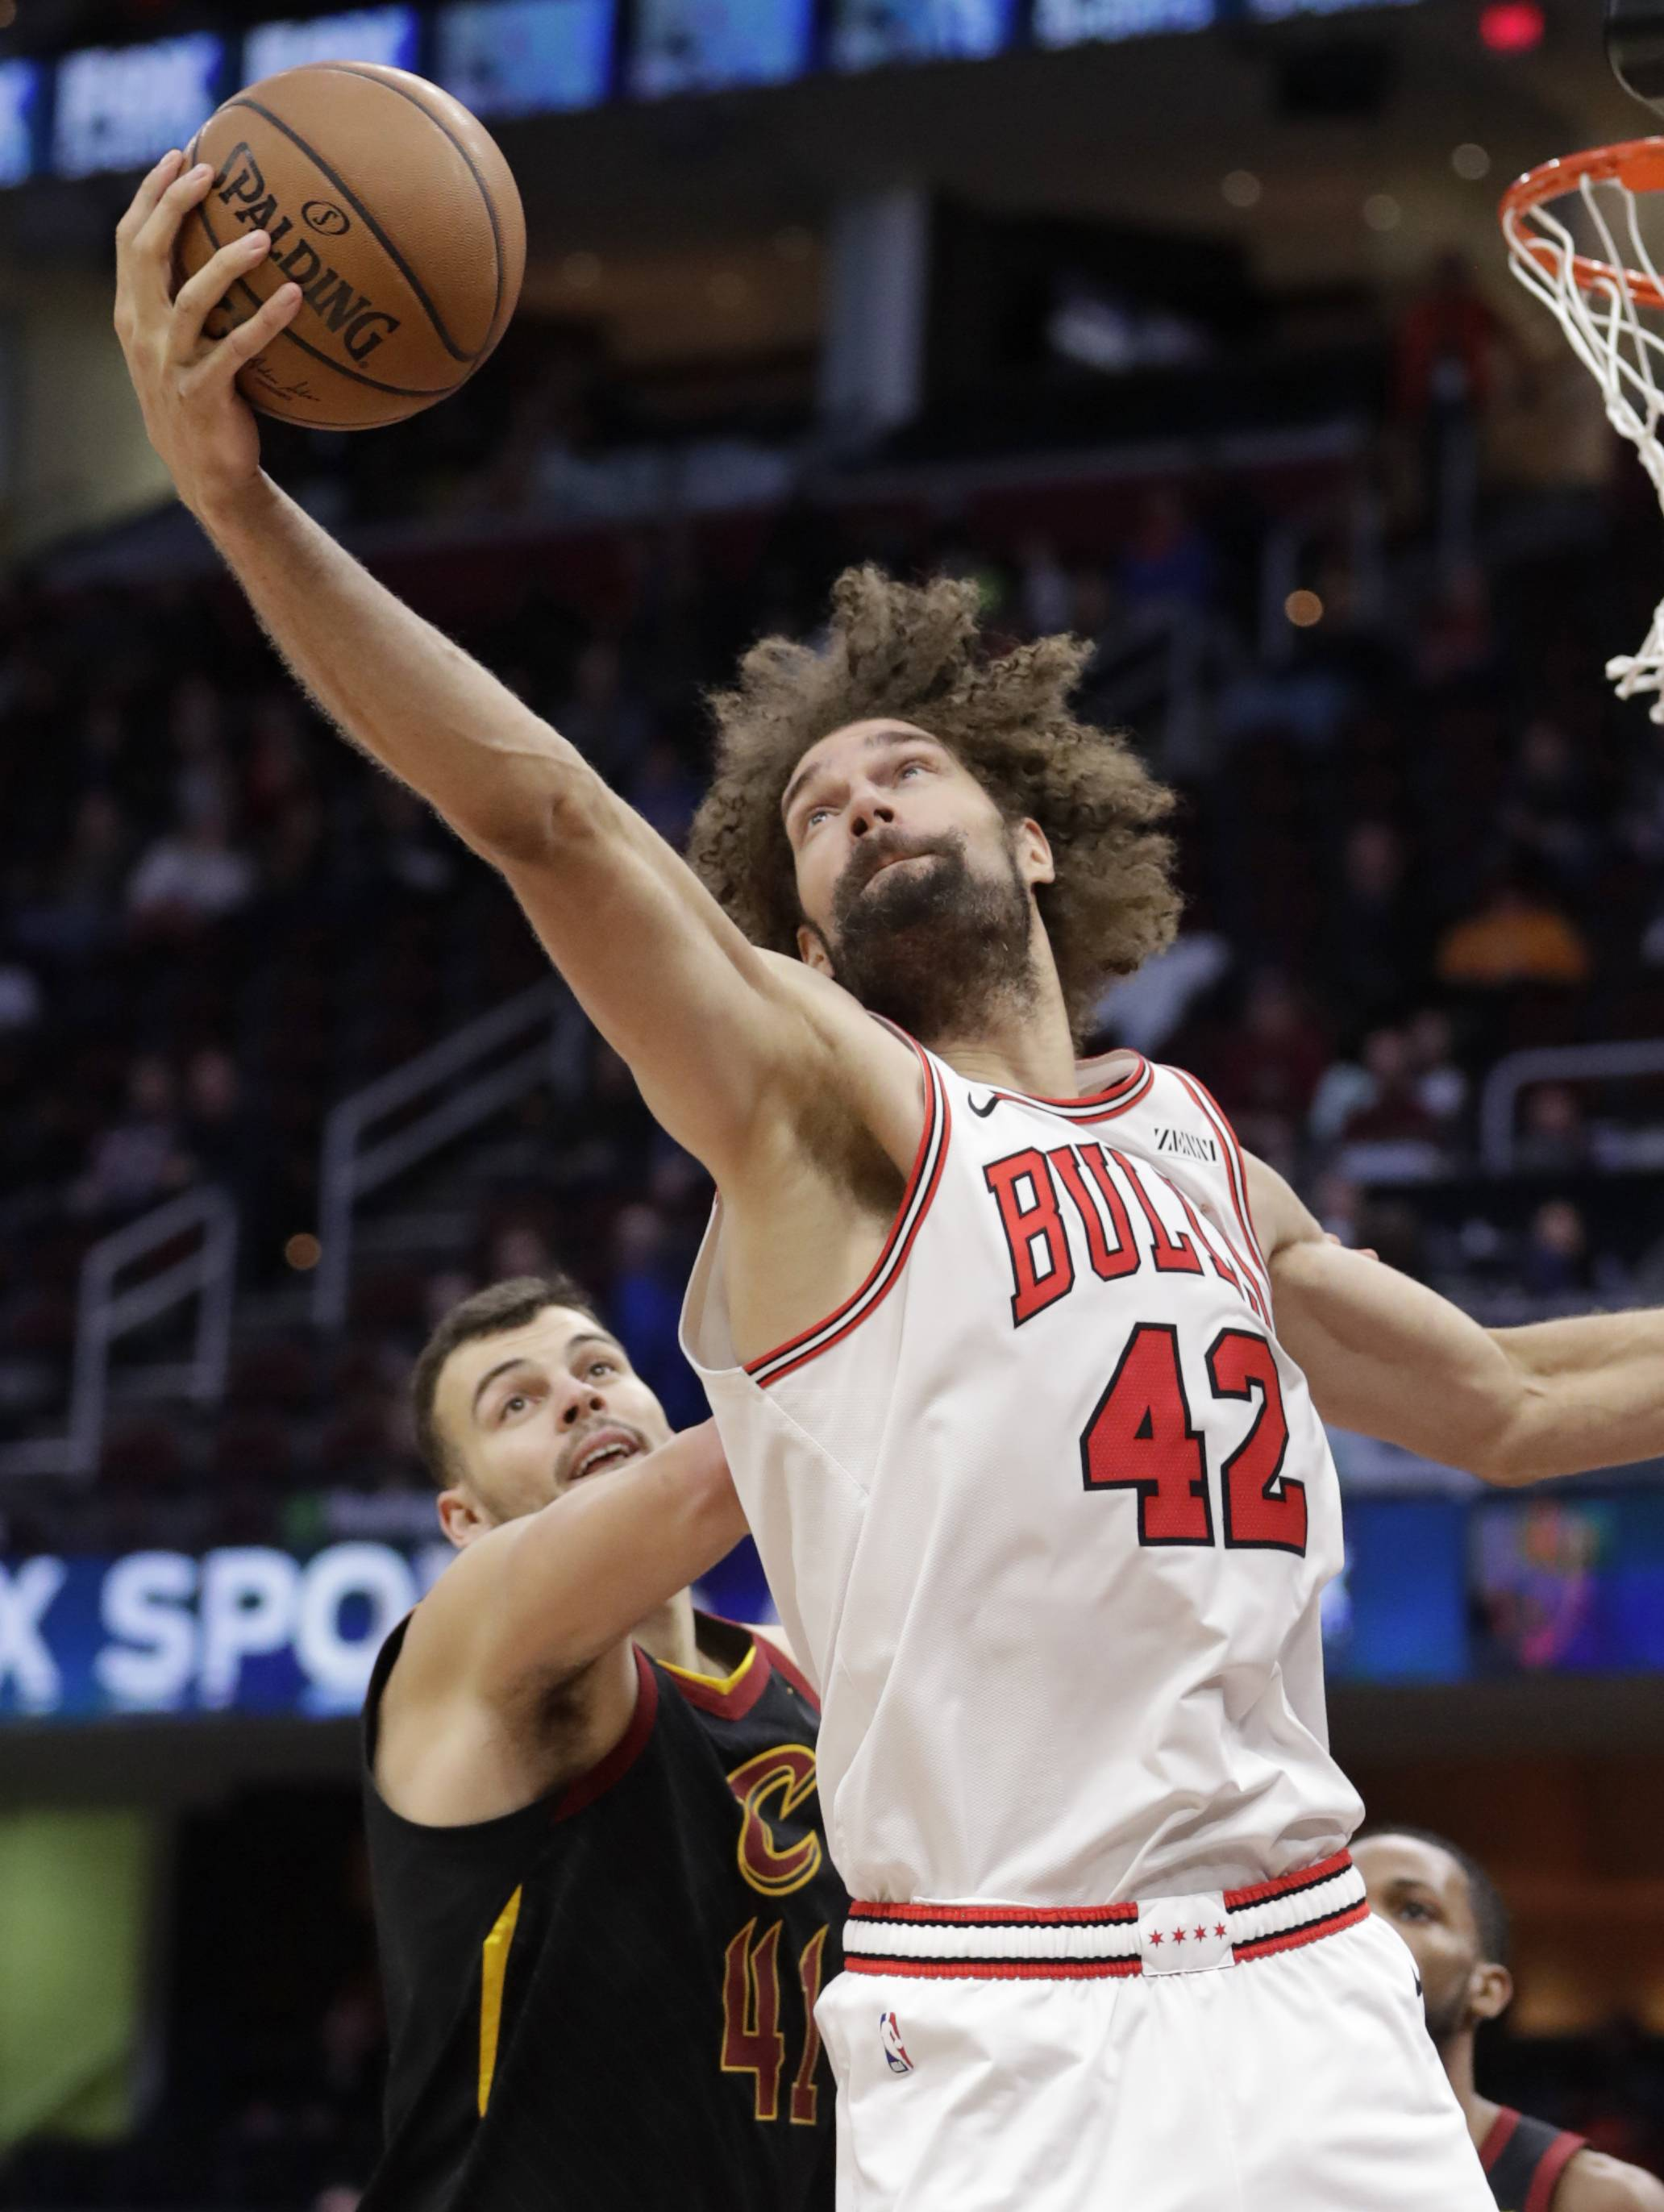 Bulls trade for Anthony, snap 10-game losing streak